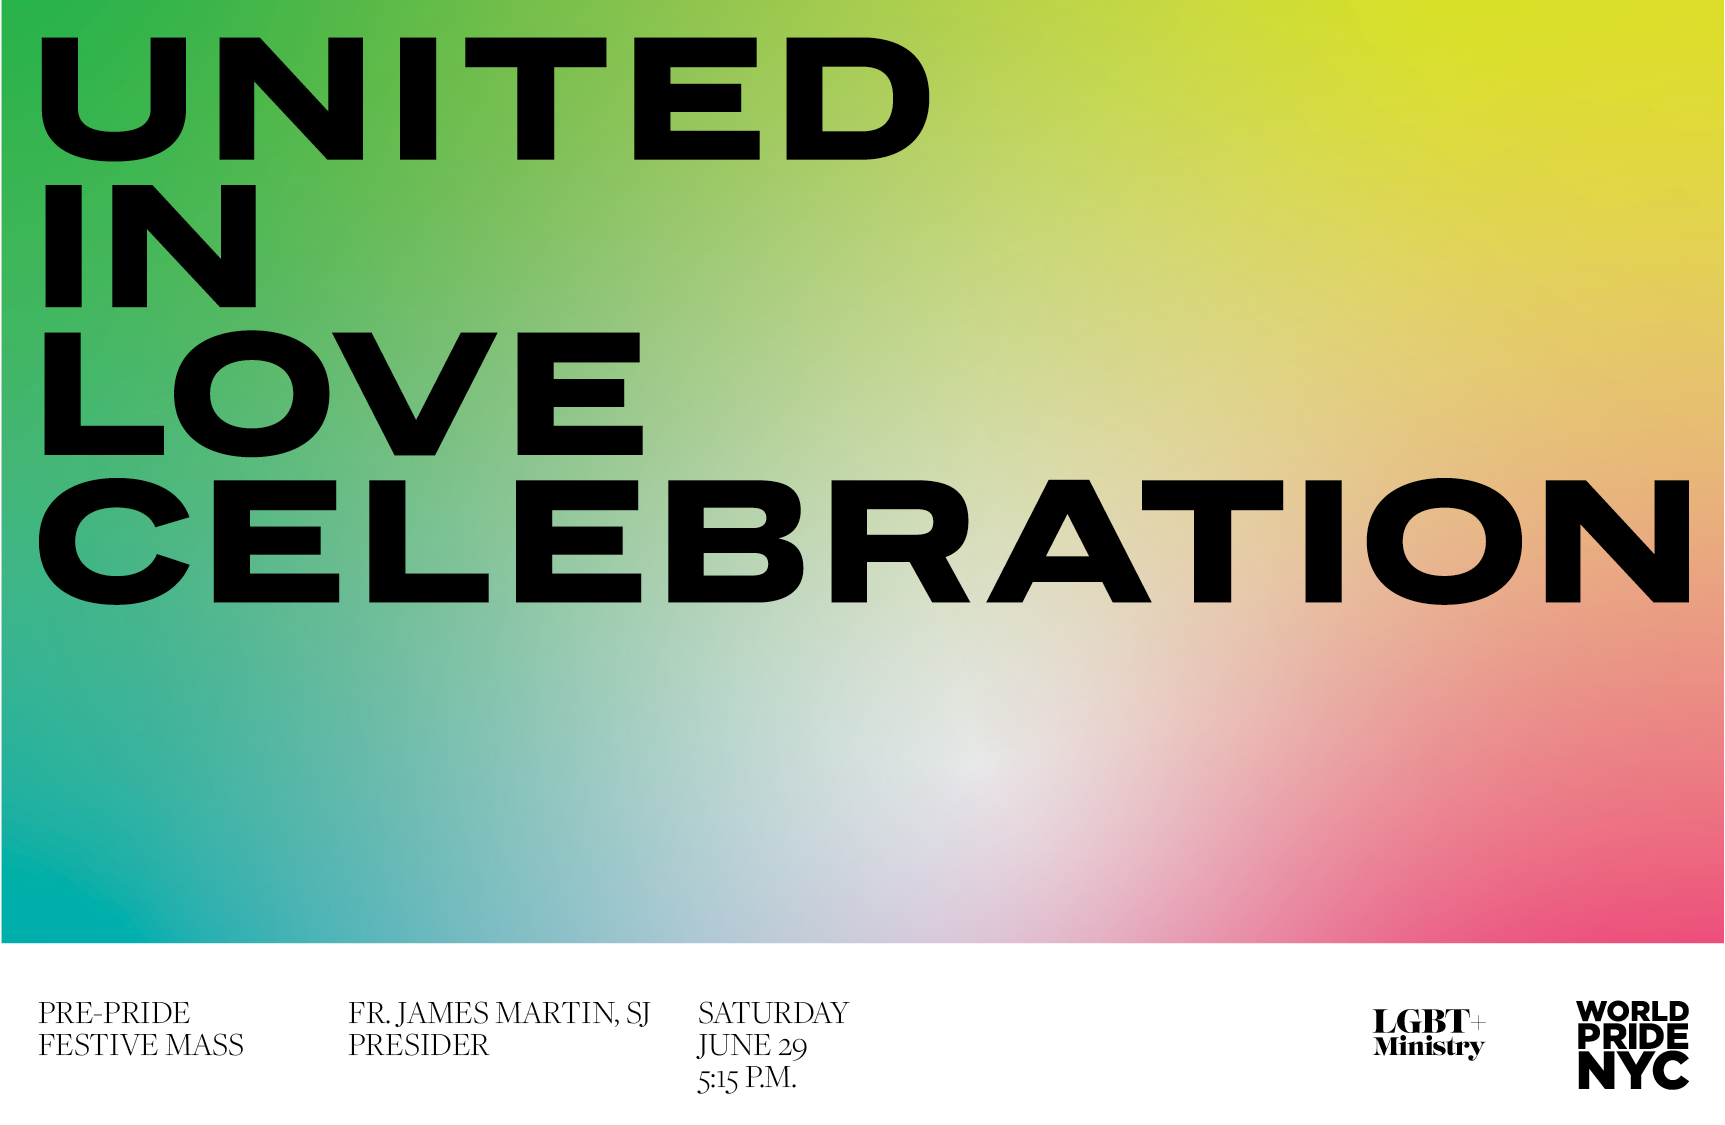 united-in-love-celebration-st-francis-de-sales-catholic-church-new-york.png